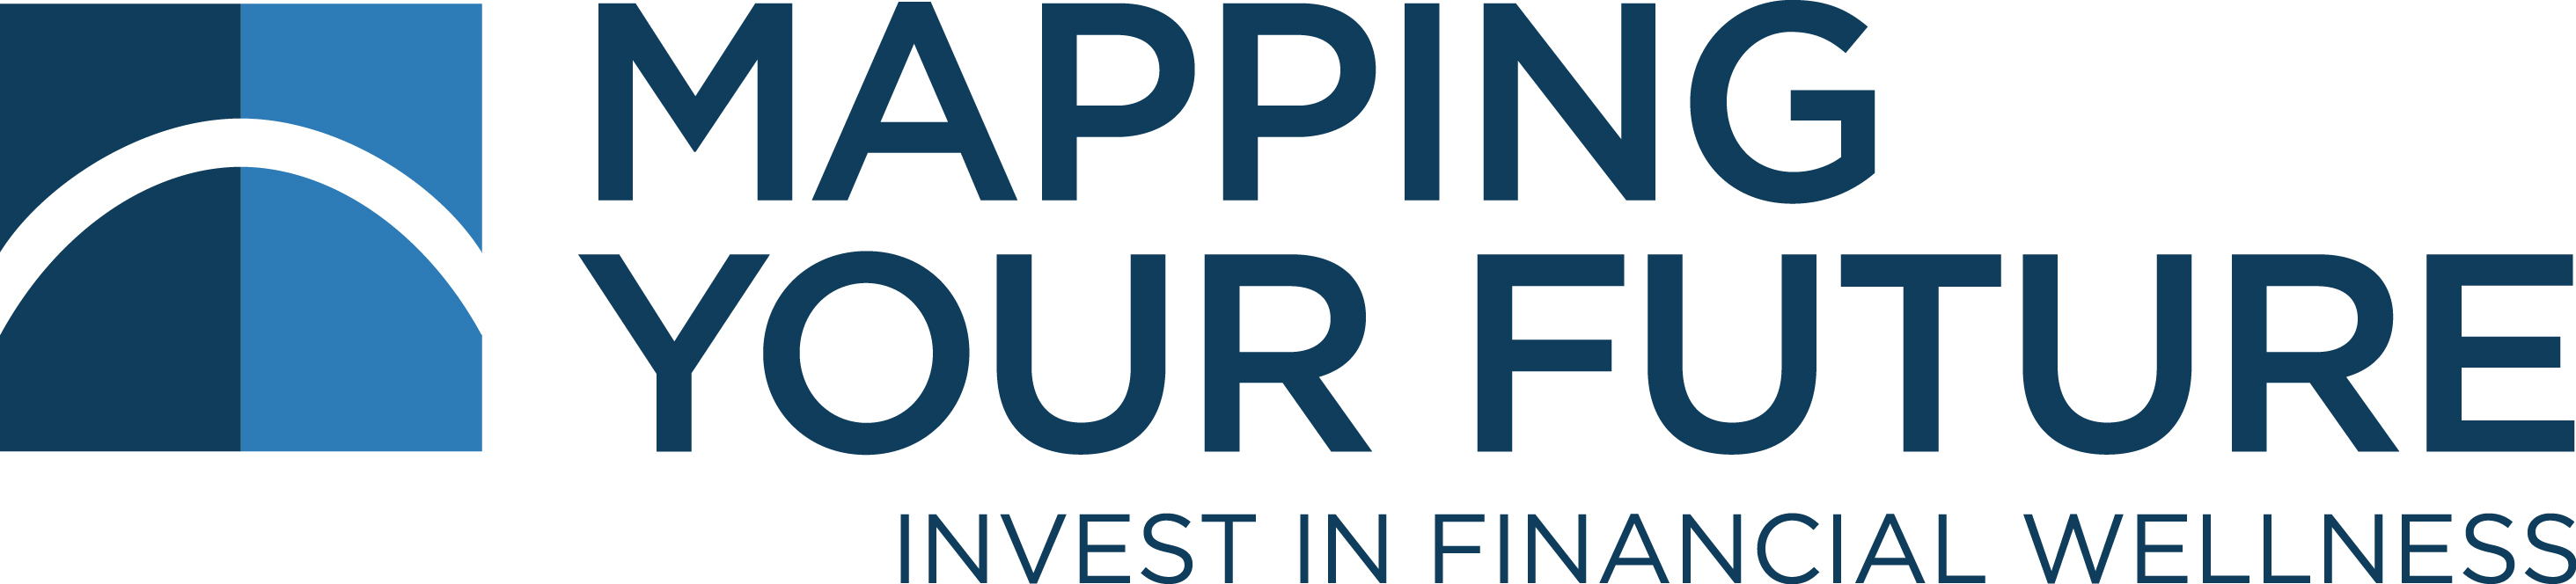 Mapping Your Future Financial Solutions